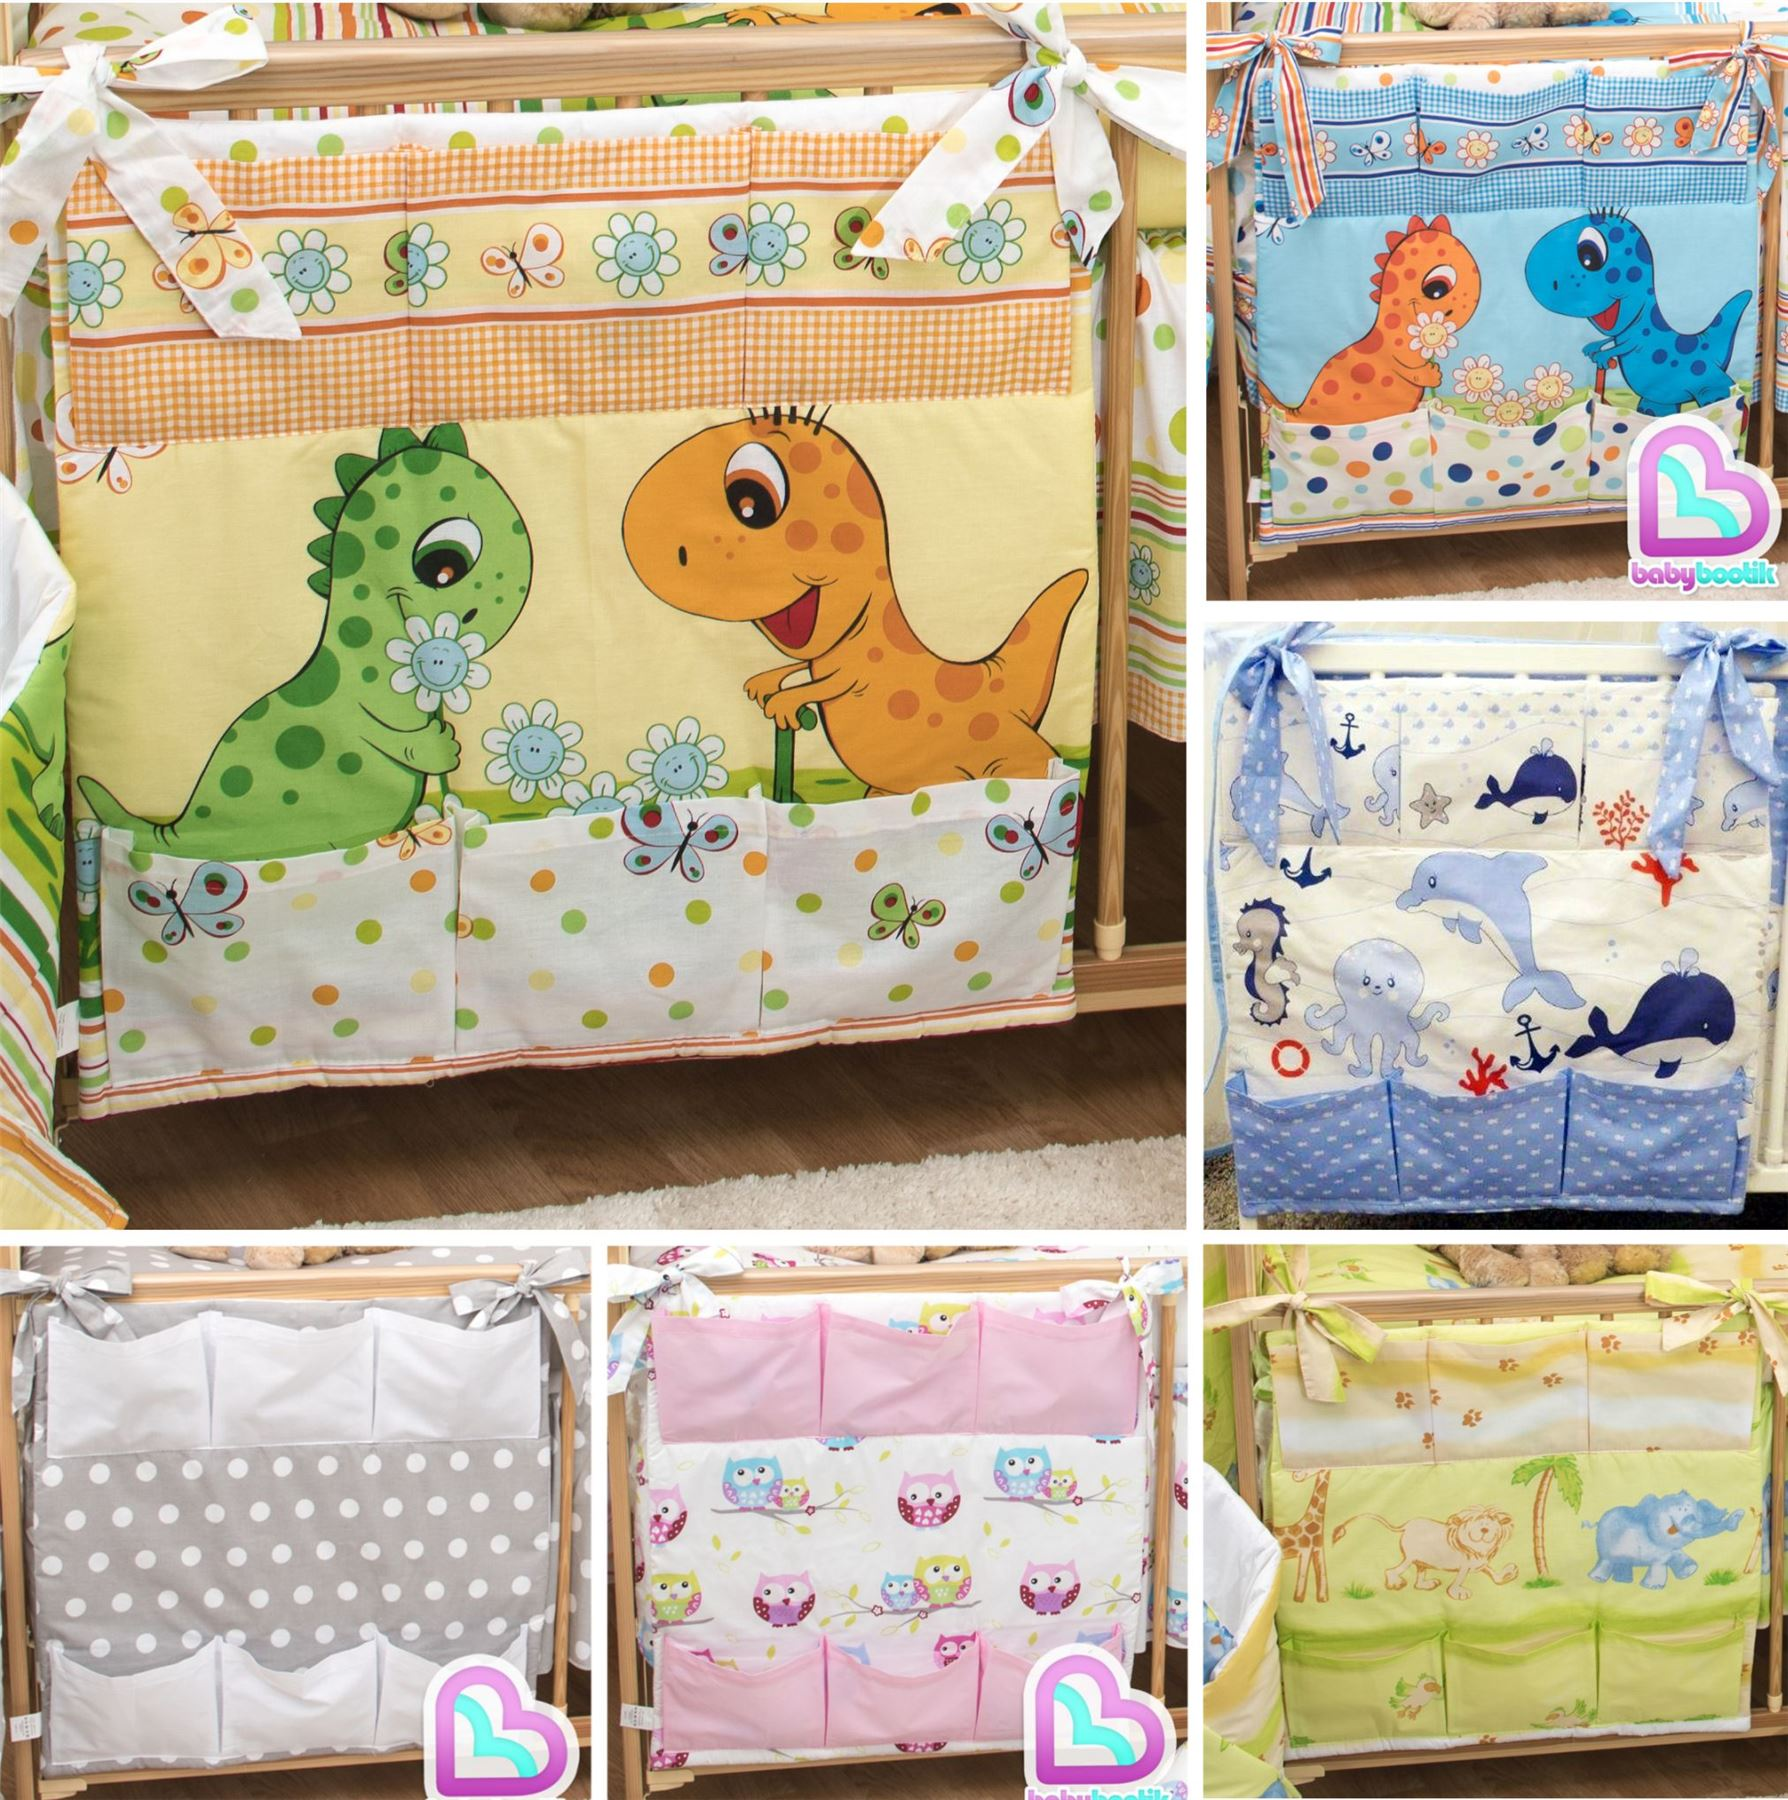 Organiser for Cot// Cotbed// Cot Bed Nursery Baby Cot Tidy